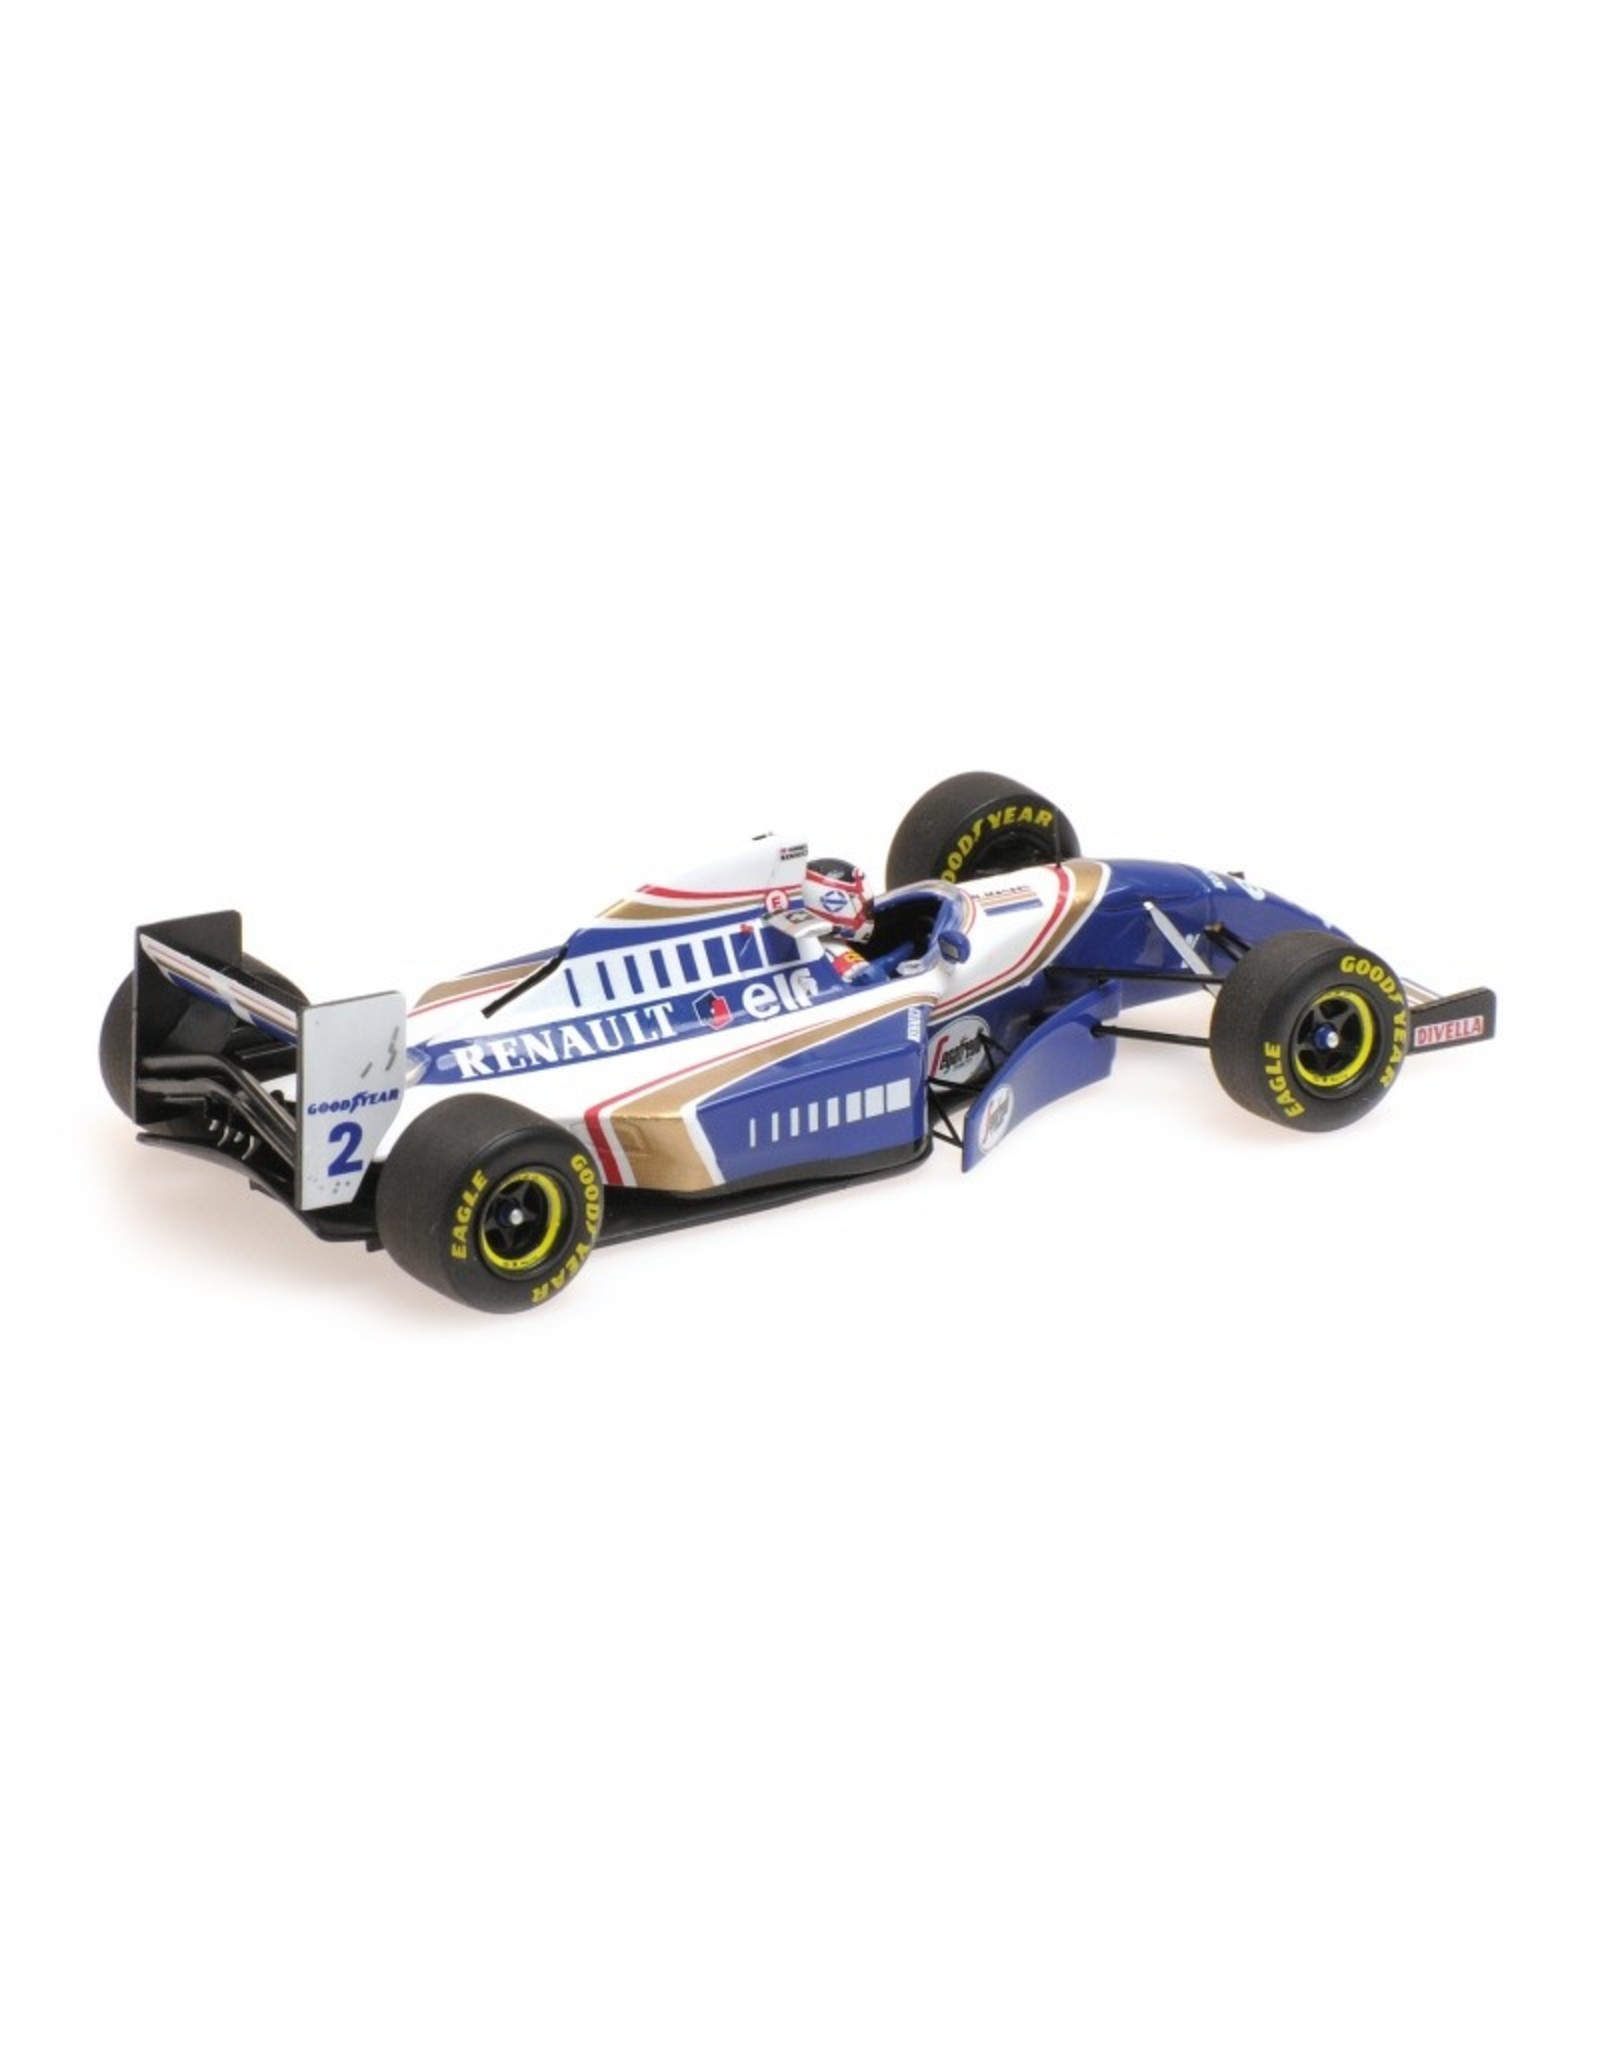 Formule 1 Williams Renault FW16 N. Mansell F1 Comeback, French GP 1994 - 1:43 - Minichamps